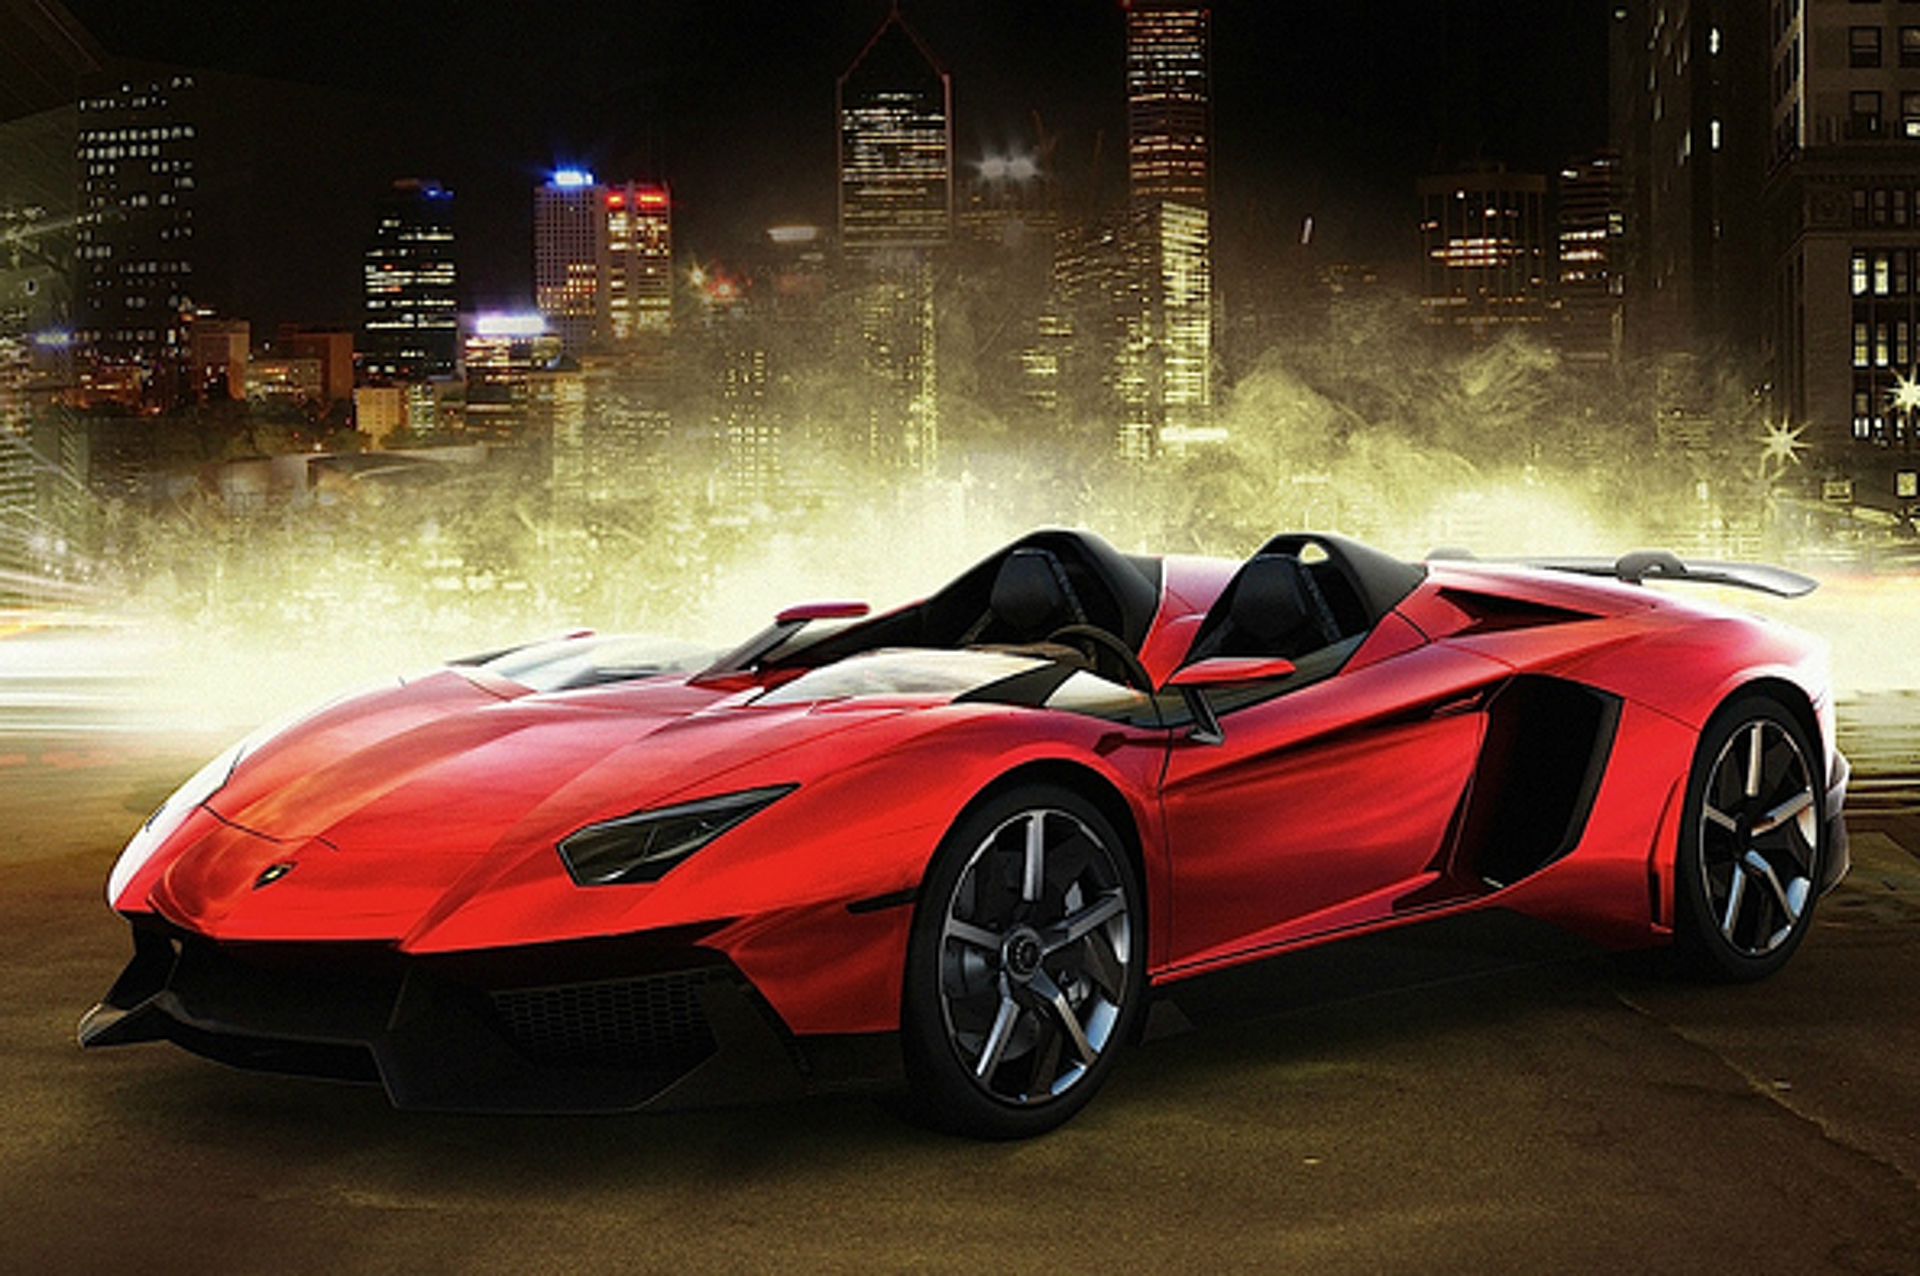 Most Popular: 2012 Lamborghini Aventador J